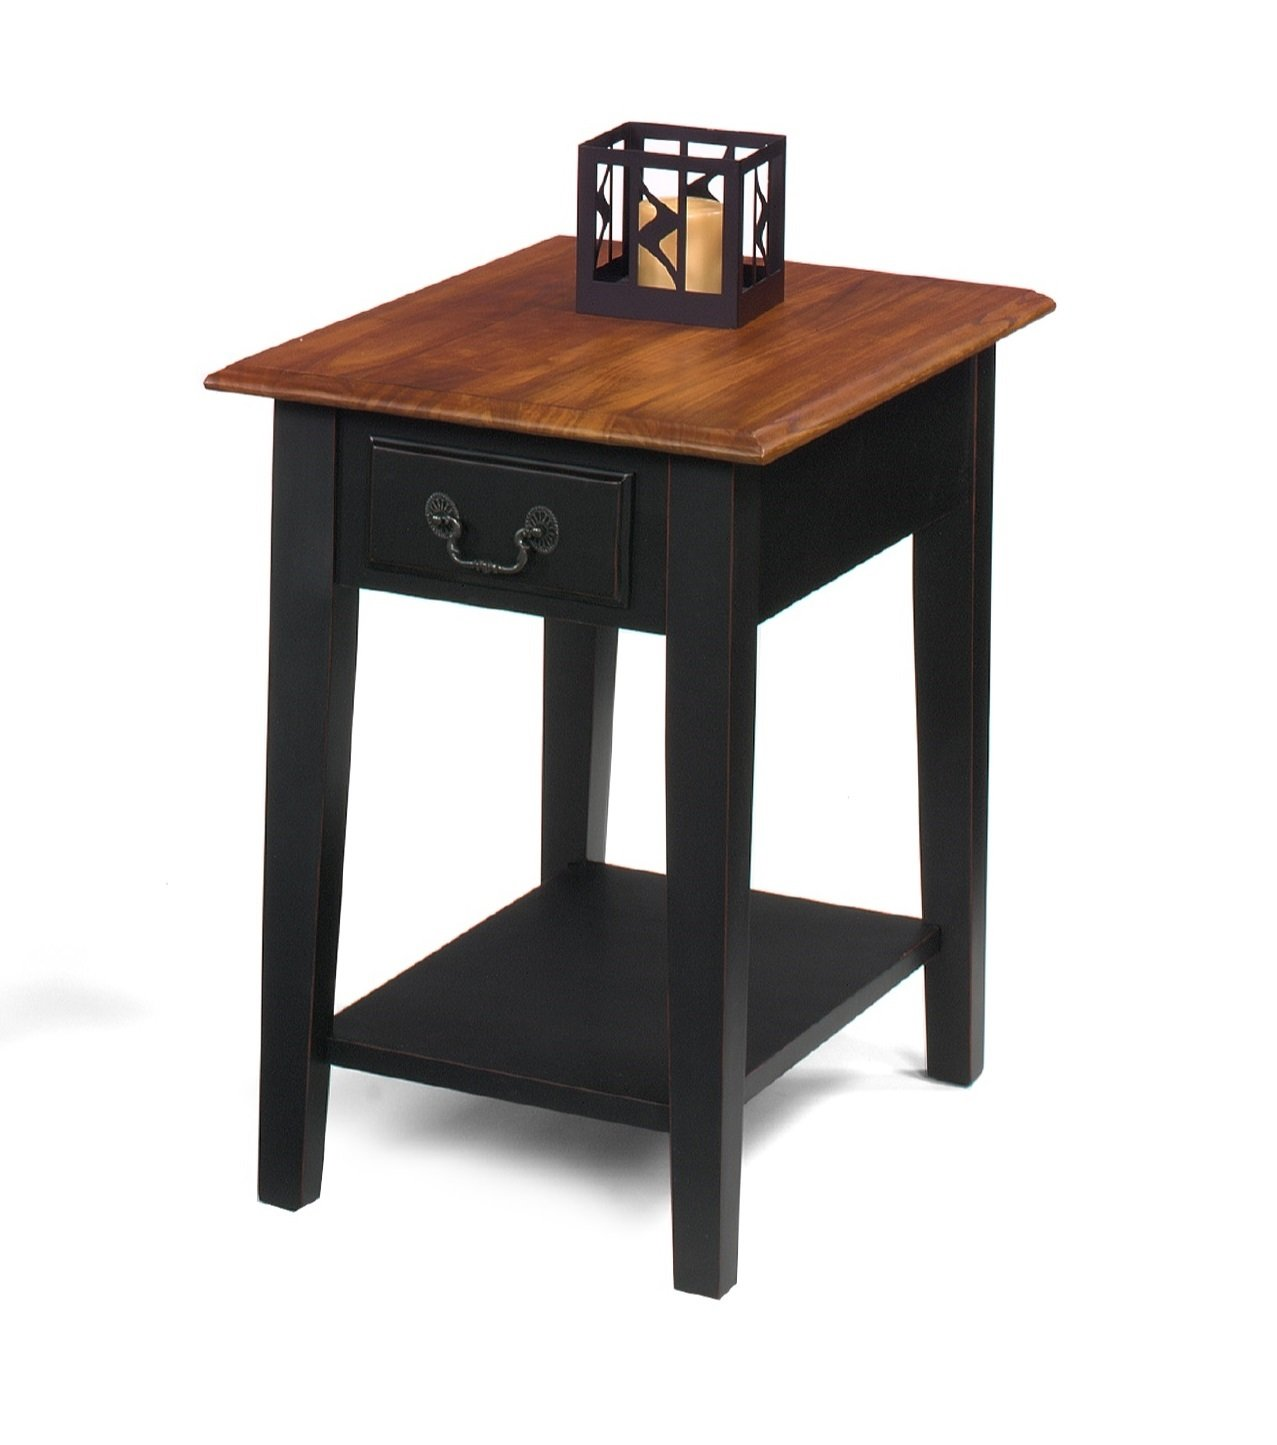 cherry and black solid wood end side table with drawer tables storage rectangular design kitchen dining square for magnolia home grey nightstand bedside lamp size corner office